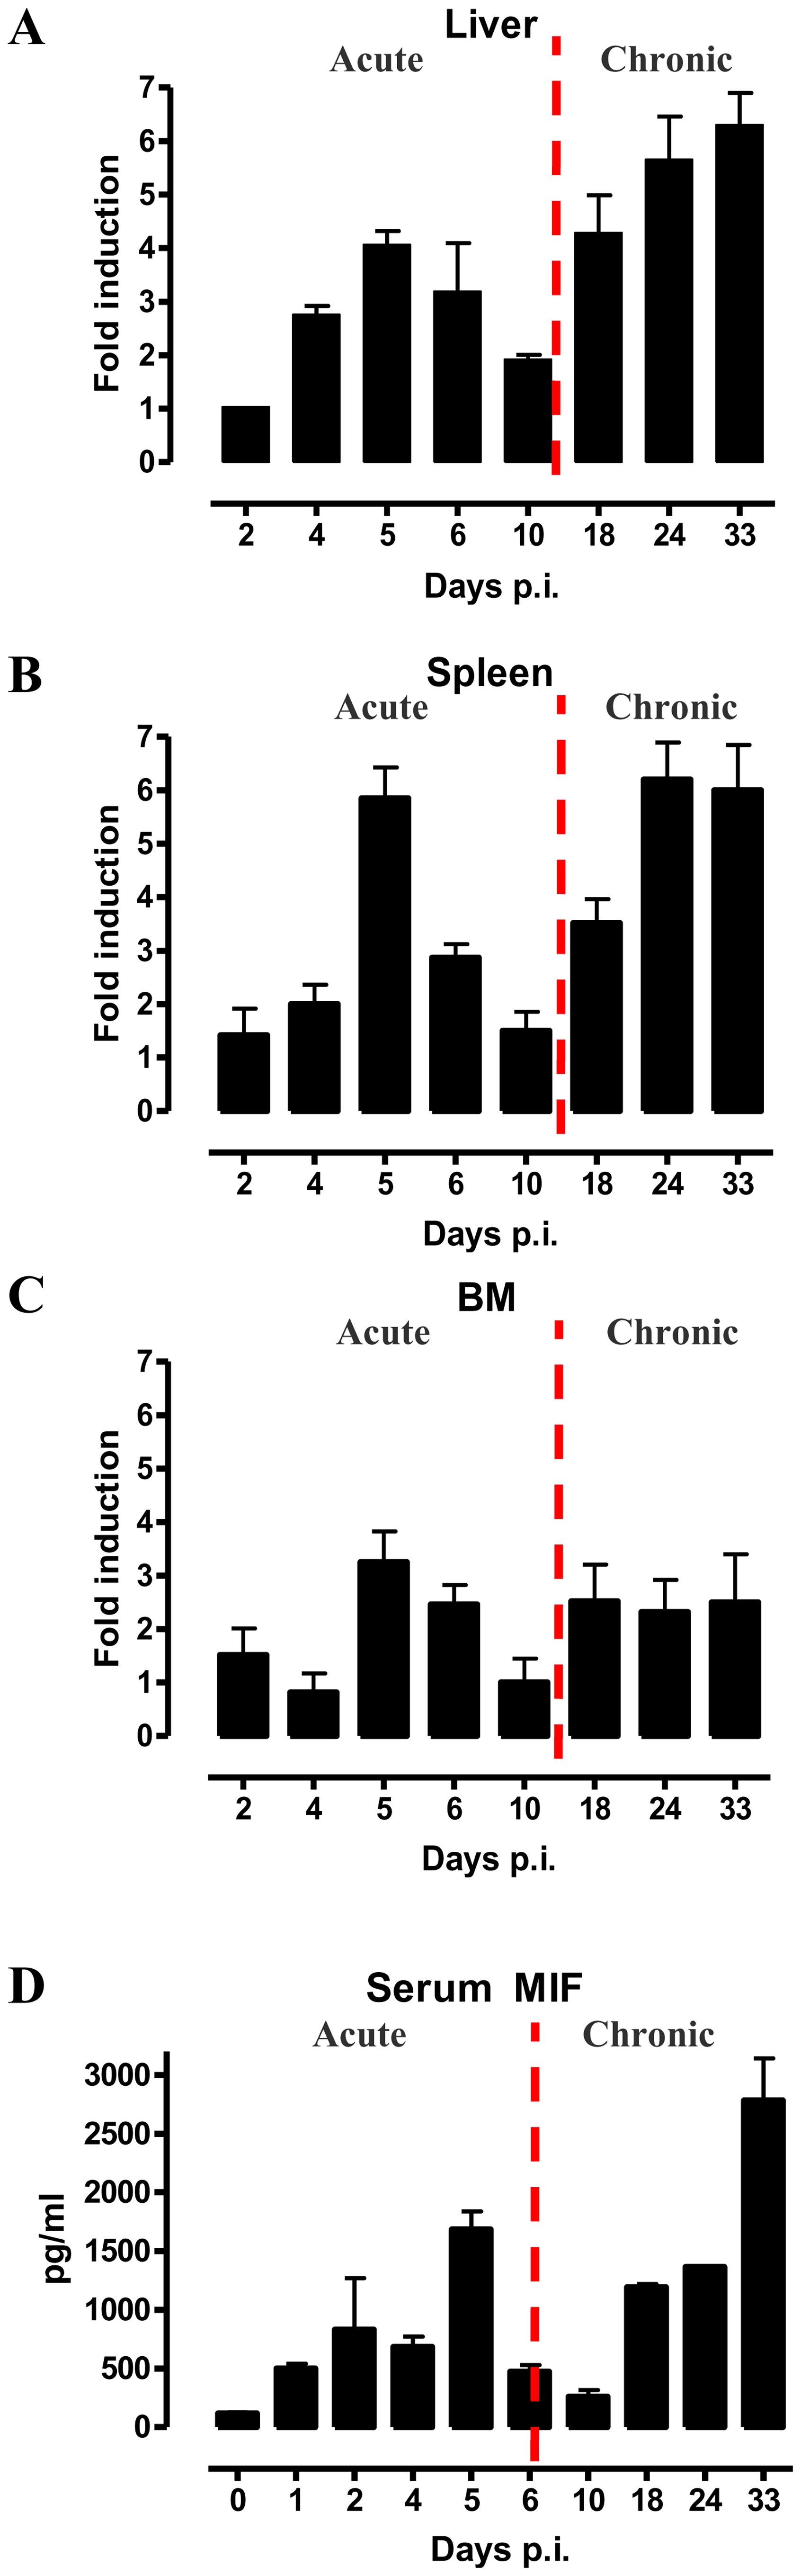 MIF expression exhibits biphasic profiles during <i>T. brucei</i> infection.